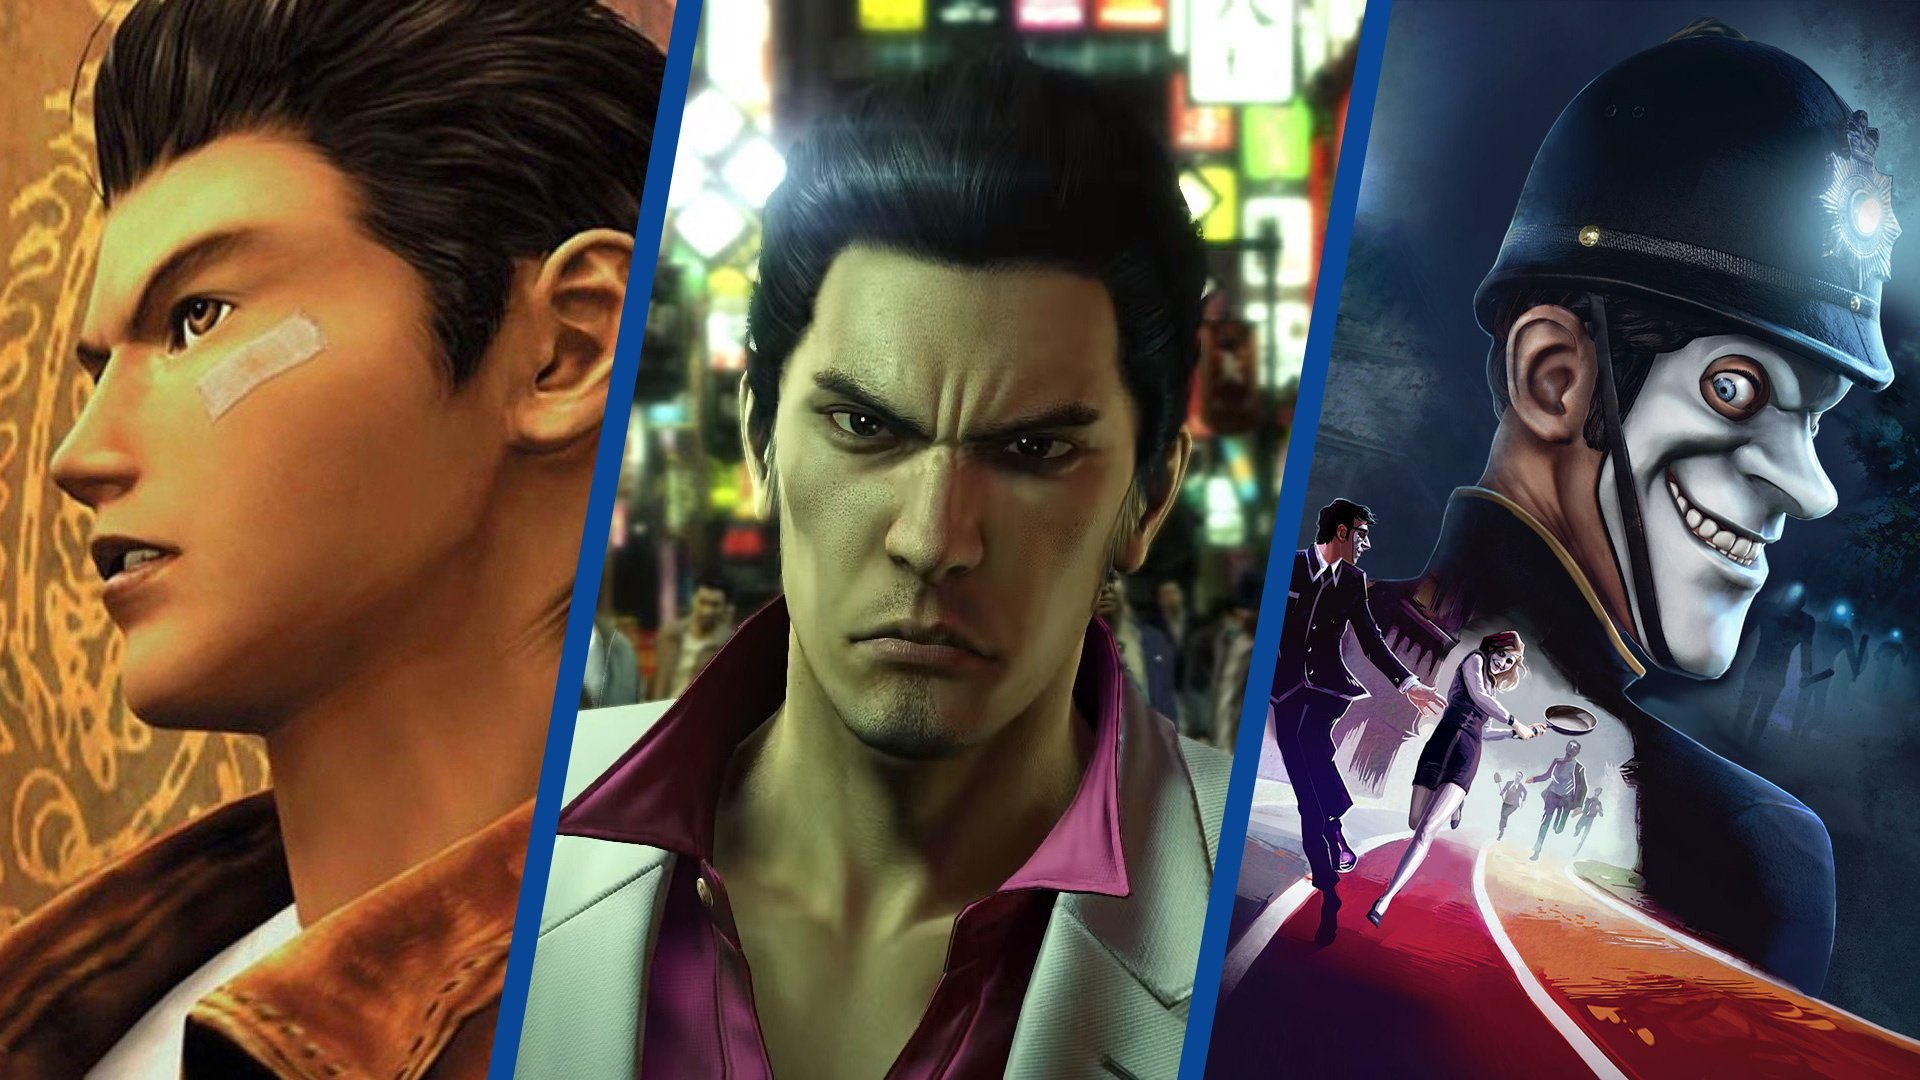 Ps4 Games That Are Releasing : New ps games releasing in august guide push square